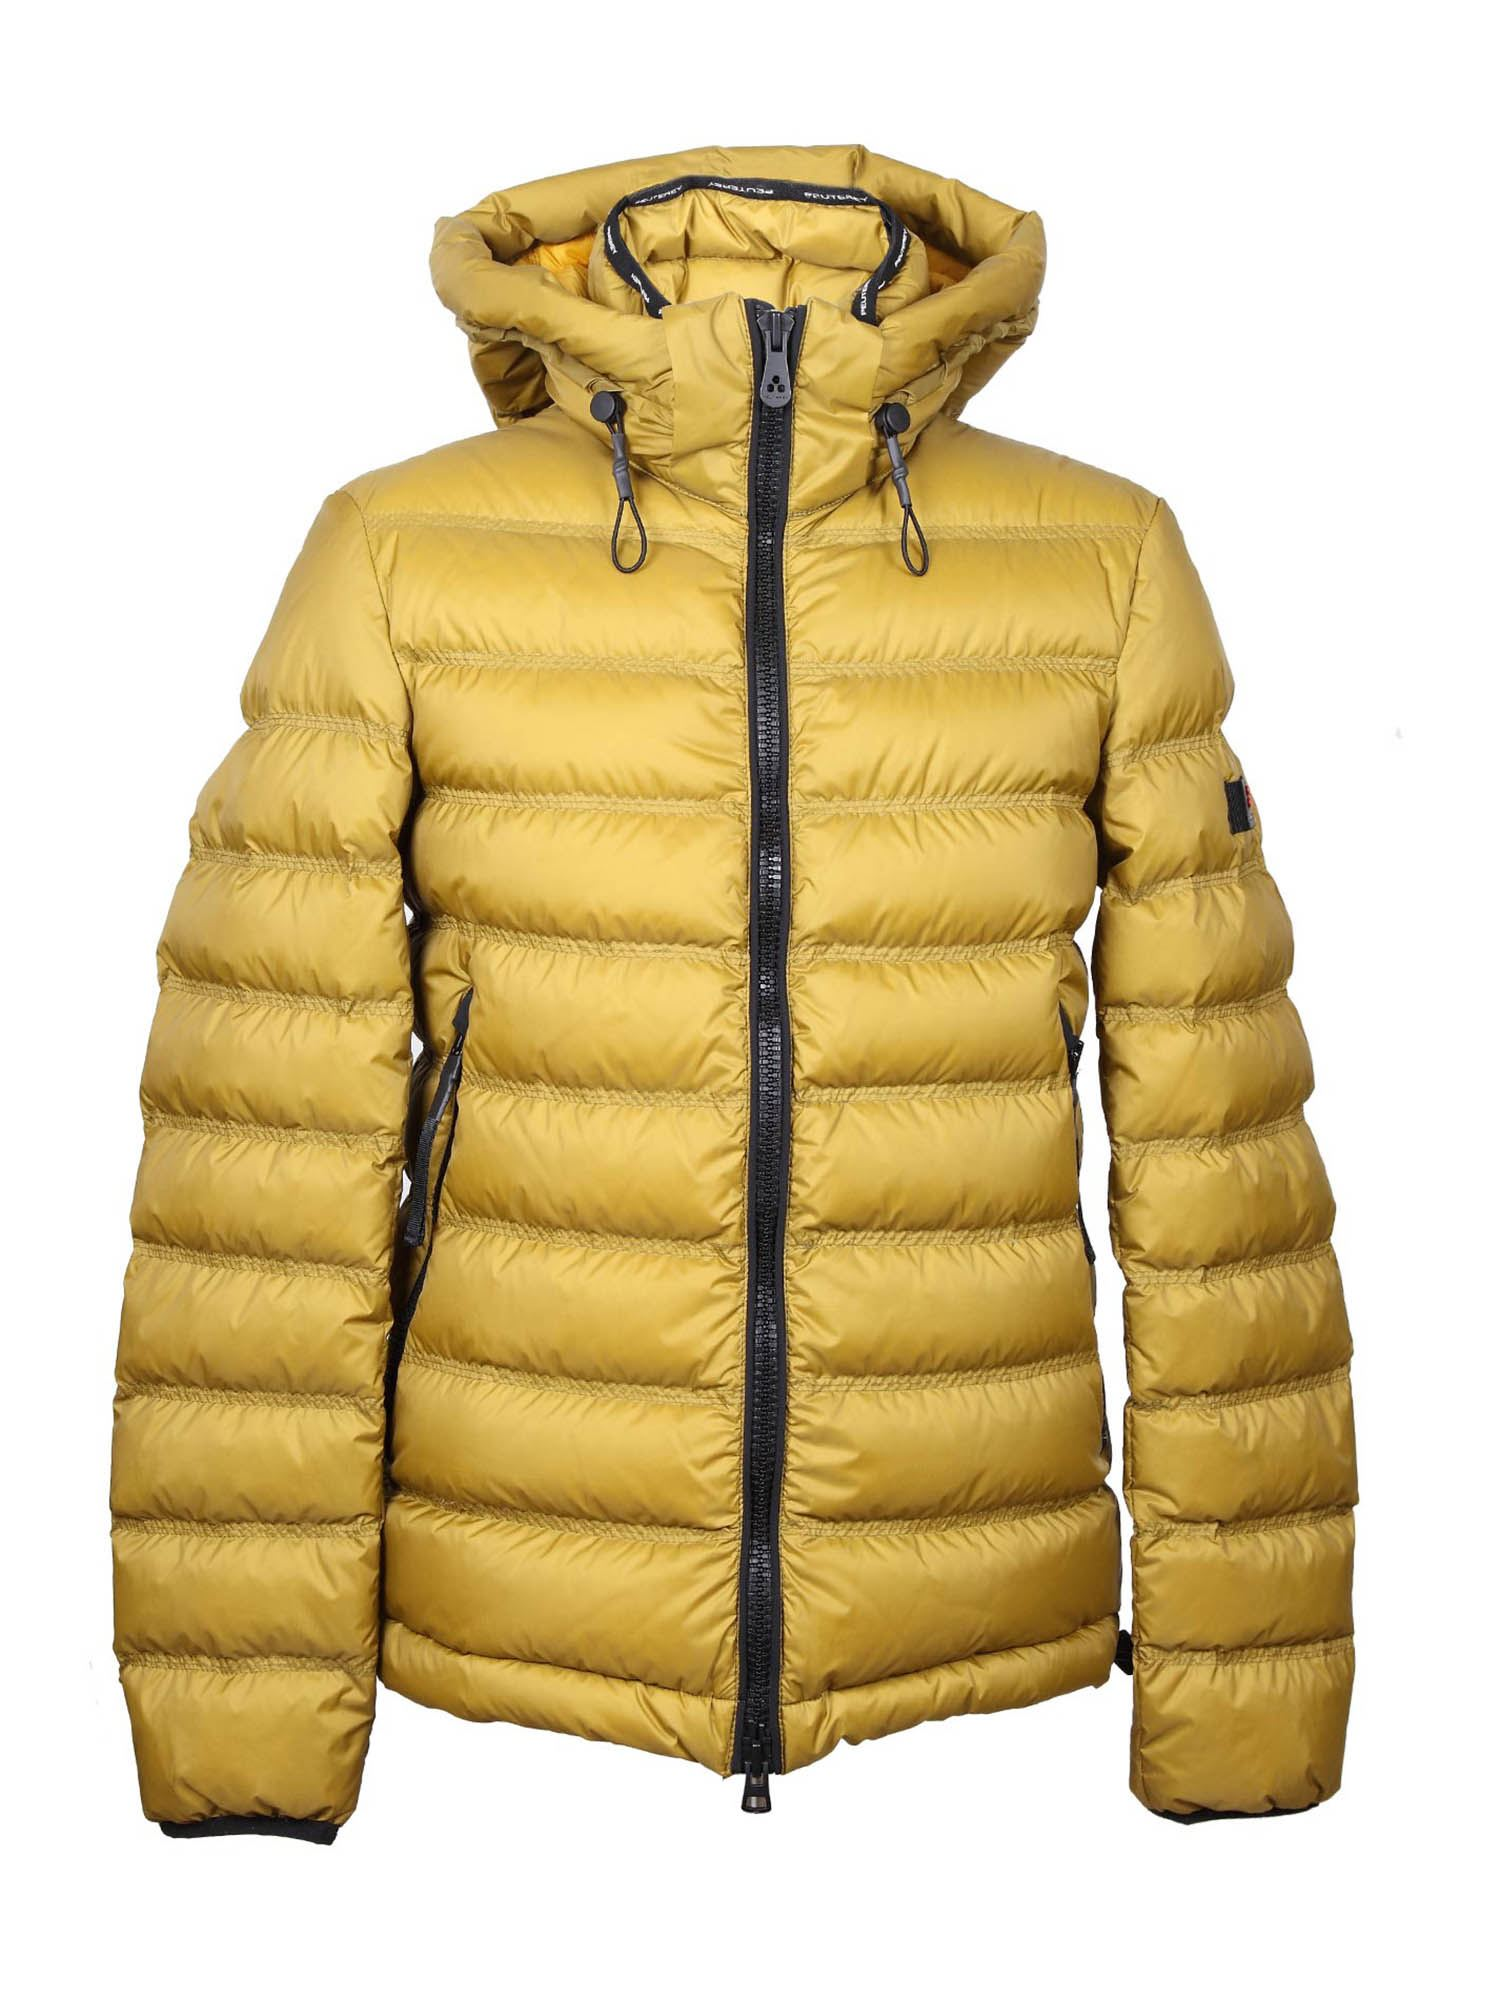 Peuterey Downs BOGGS DOWN JACKET IN MUSTARD COLOR